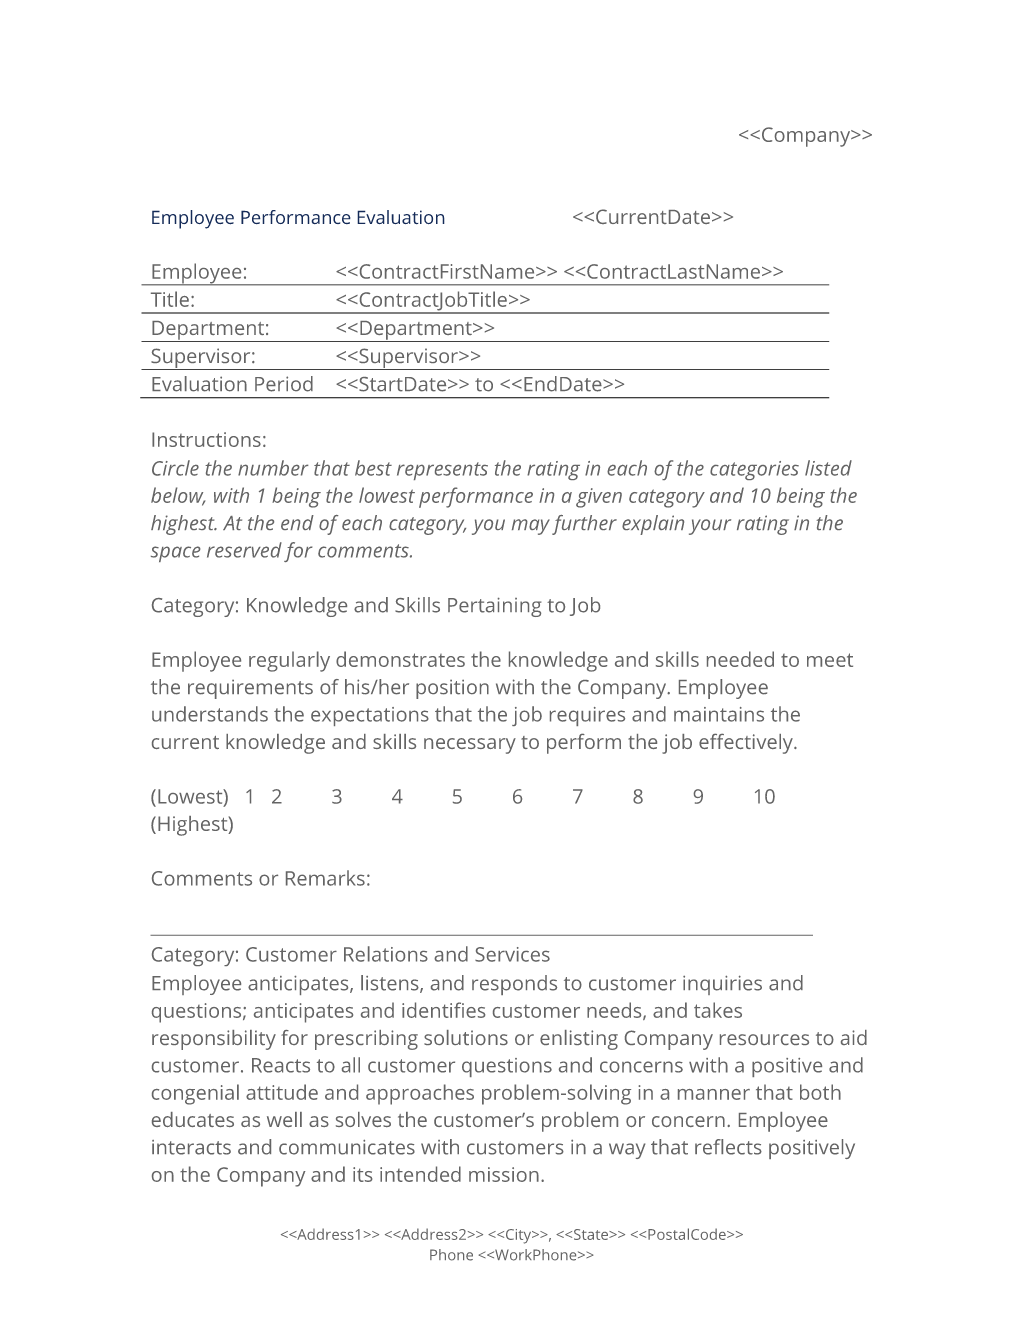 Employee Performance Evaluation Form  Use The Employee